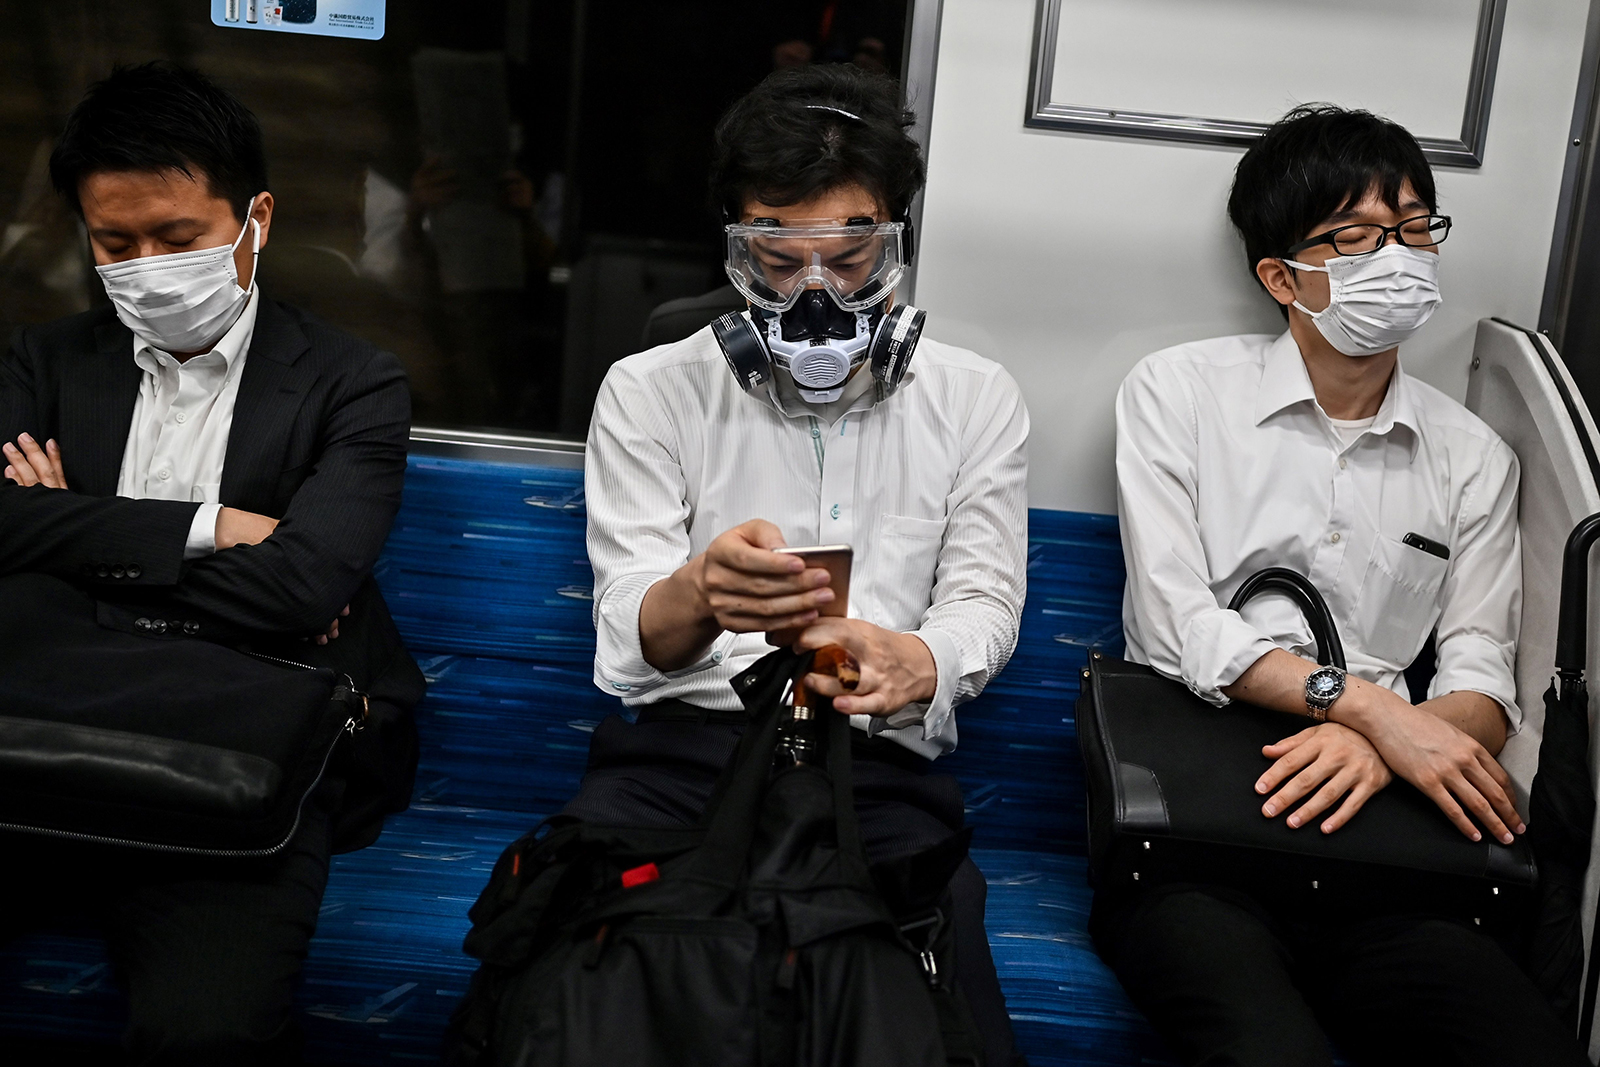 A man wearing a respirator and goggles sits in between commuters on a train in Tokyo on June 25.